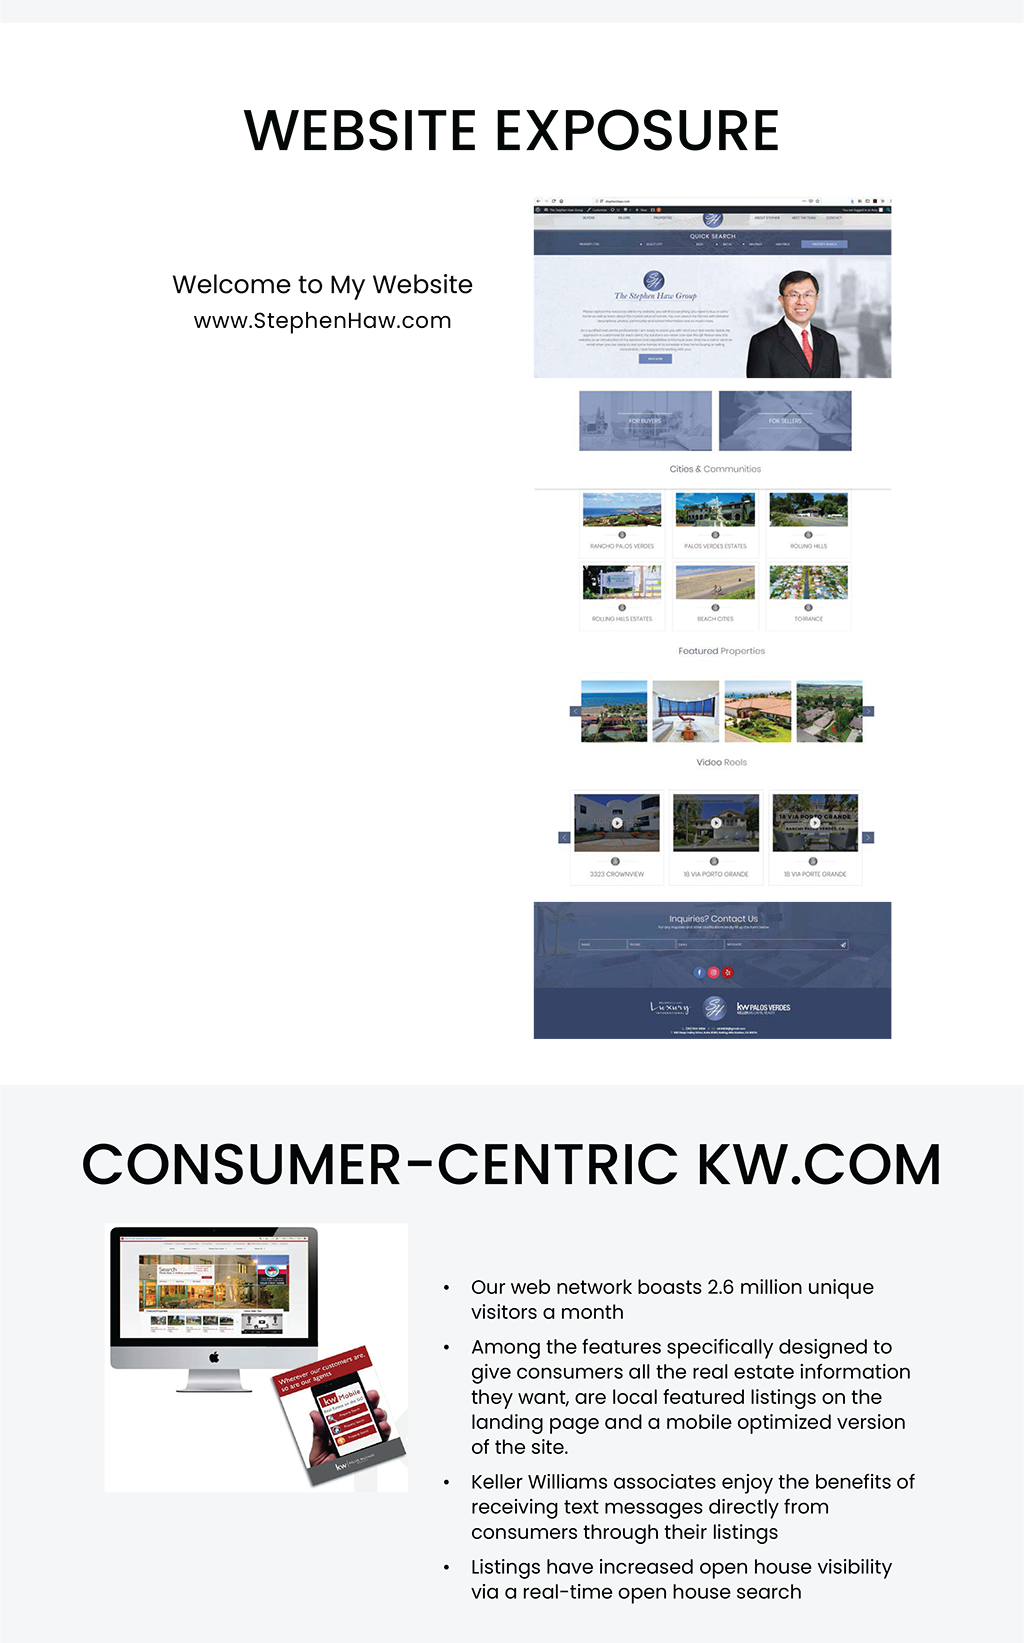 Website Exposure. Welcome to my website www.stephenhaw.com. Consumer-centric kw.com. Our web network boasts 2.6 million unique visitors a month. Among the features specifically designed to give customers all the real estate information they want, are local featured listings on the landing page and a mobile optimized version of the site. Keller williams associates enjoy the benefits of receiving text messages directly from consumers through their listings. Listings have increased open house visibility via a real-time open house search.